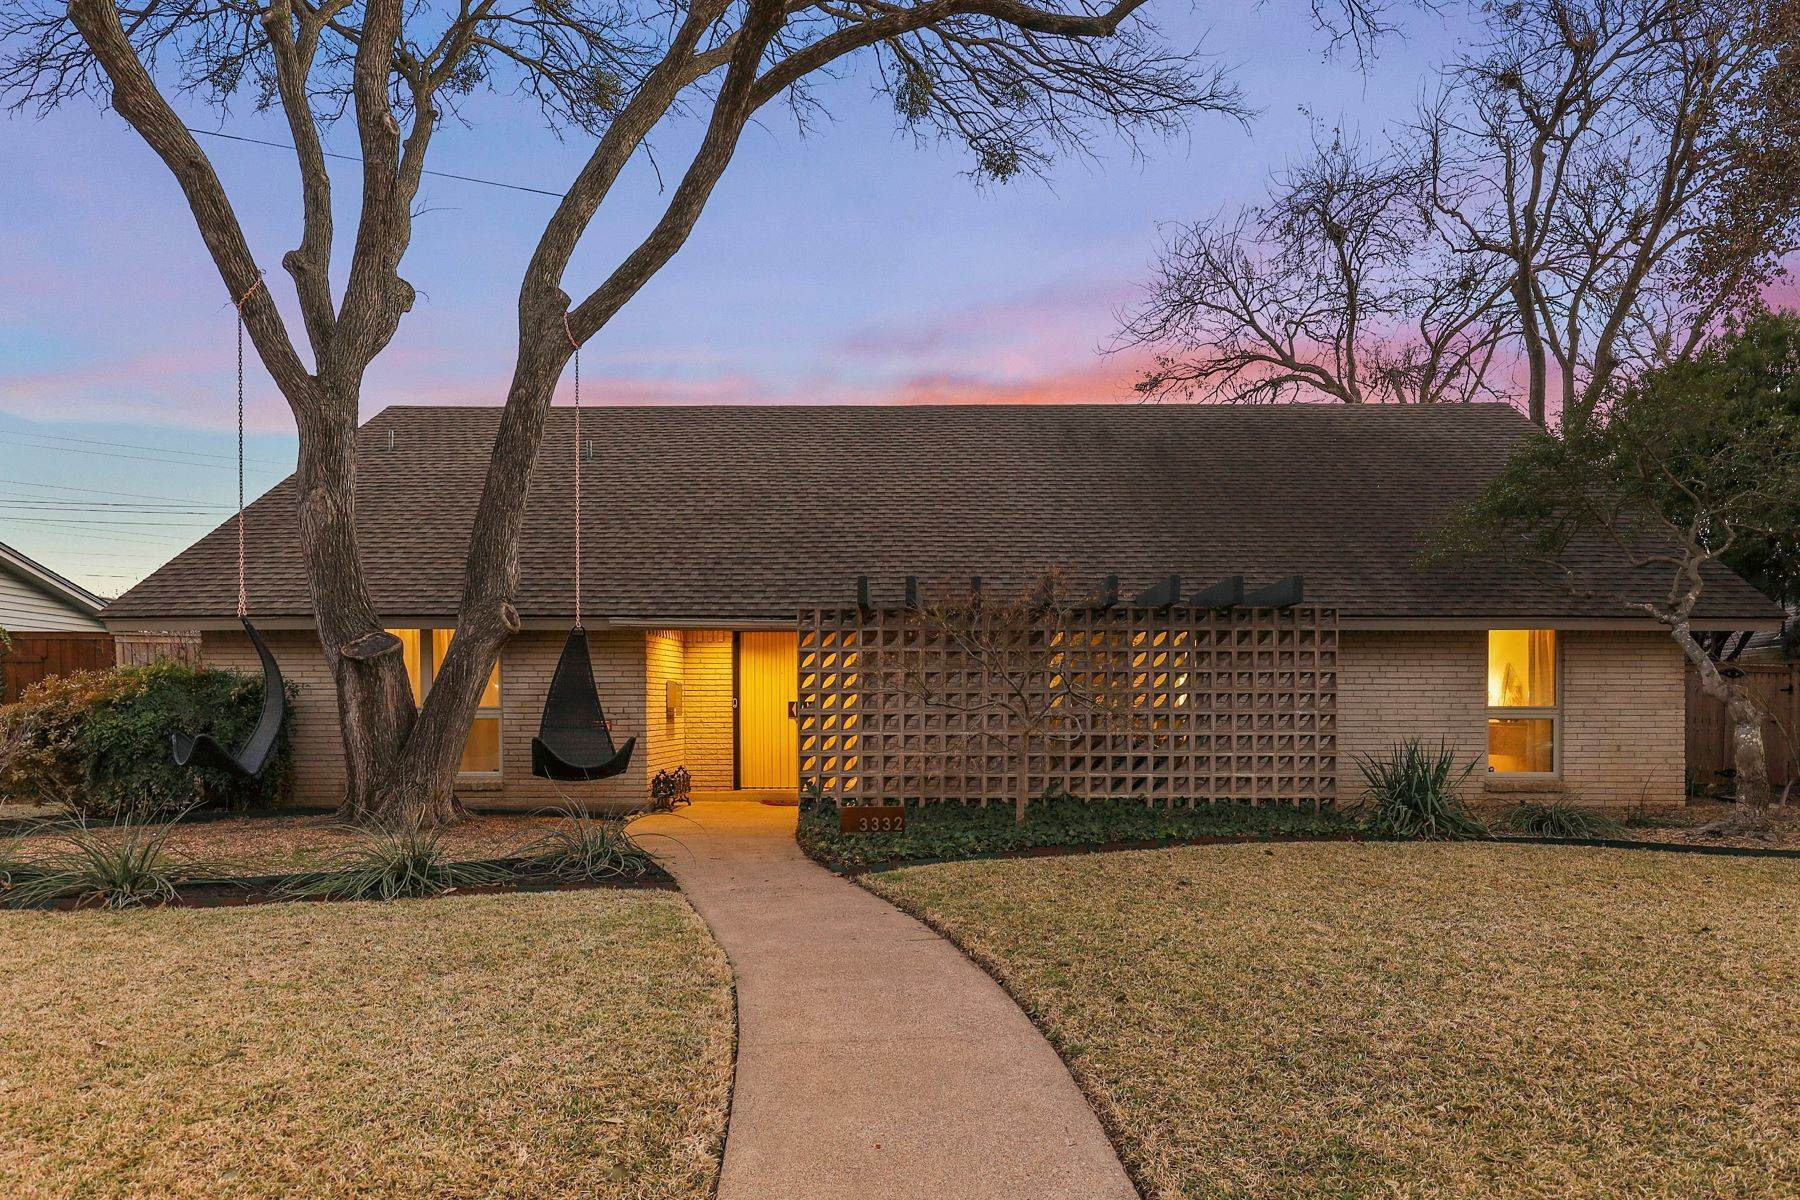 Single Family Homes for Sale at Mid-Century Perfection in Sparkman Club Estates 3332 Camelot Drive Dallas, Texas 75229 United States